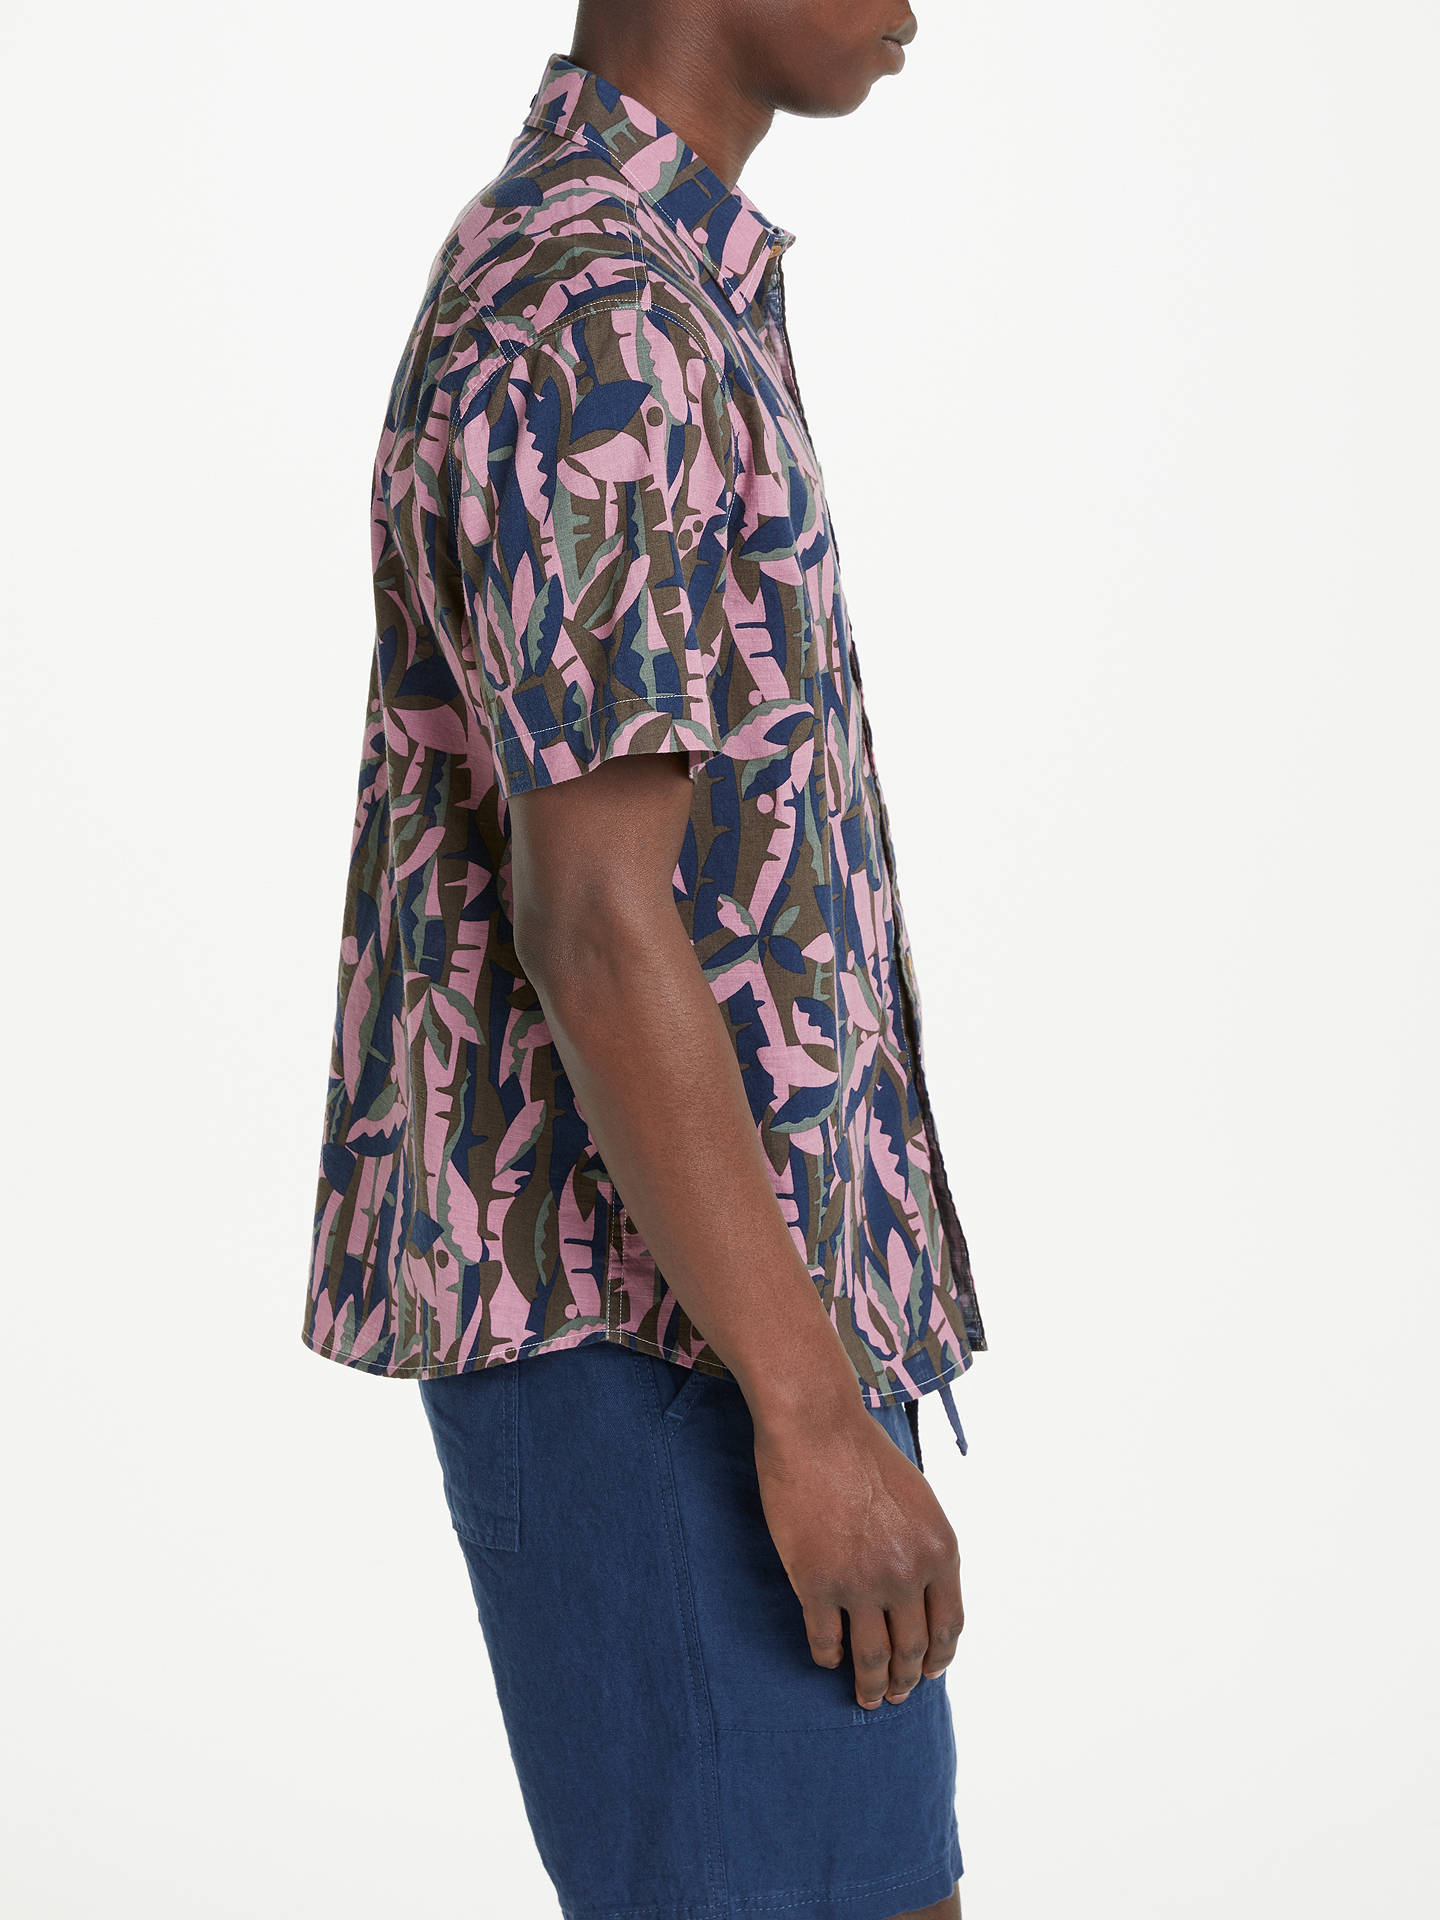 BuyJOHN LEWIS & Co. Japanese Bamboo Print Short Sleeve Shirt, Blue/Red, S Online at johnlewis.com